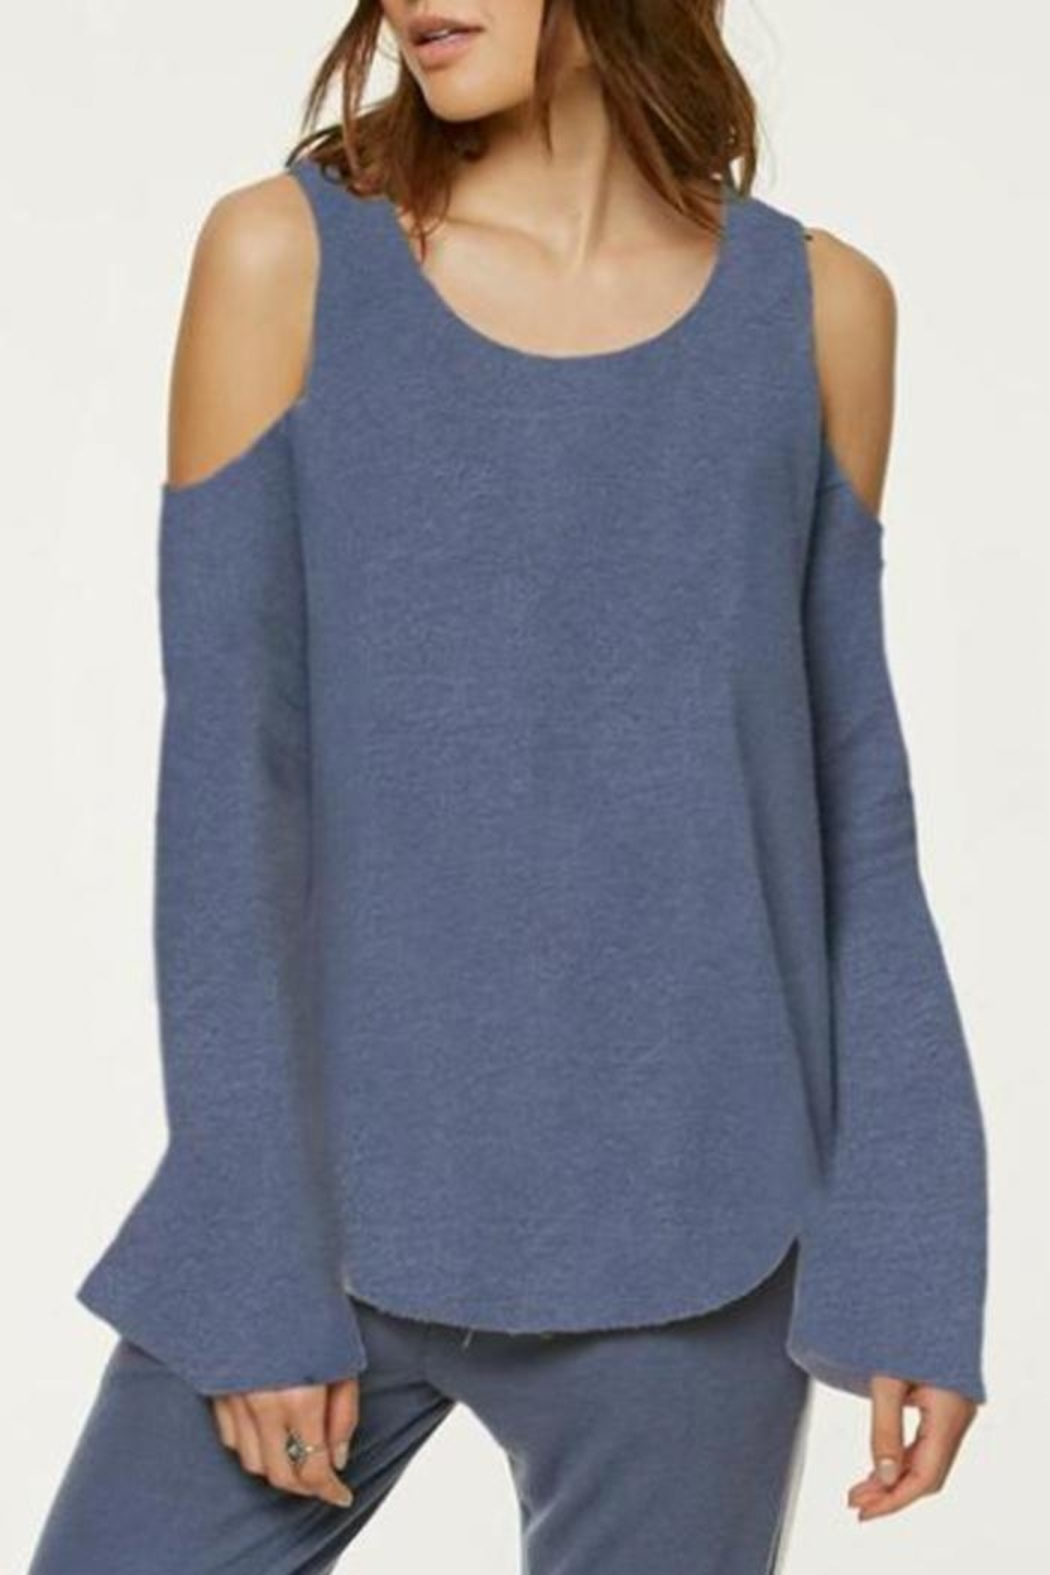 O'Neill Butter Soft Cold Shoulder Sweater - Main Image